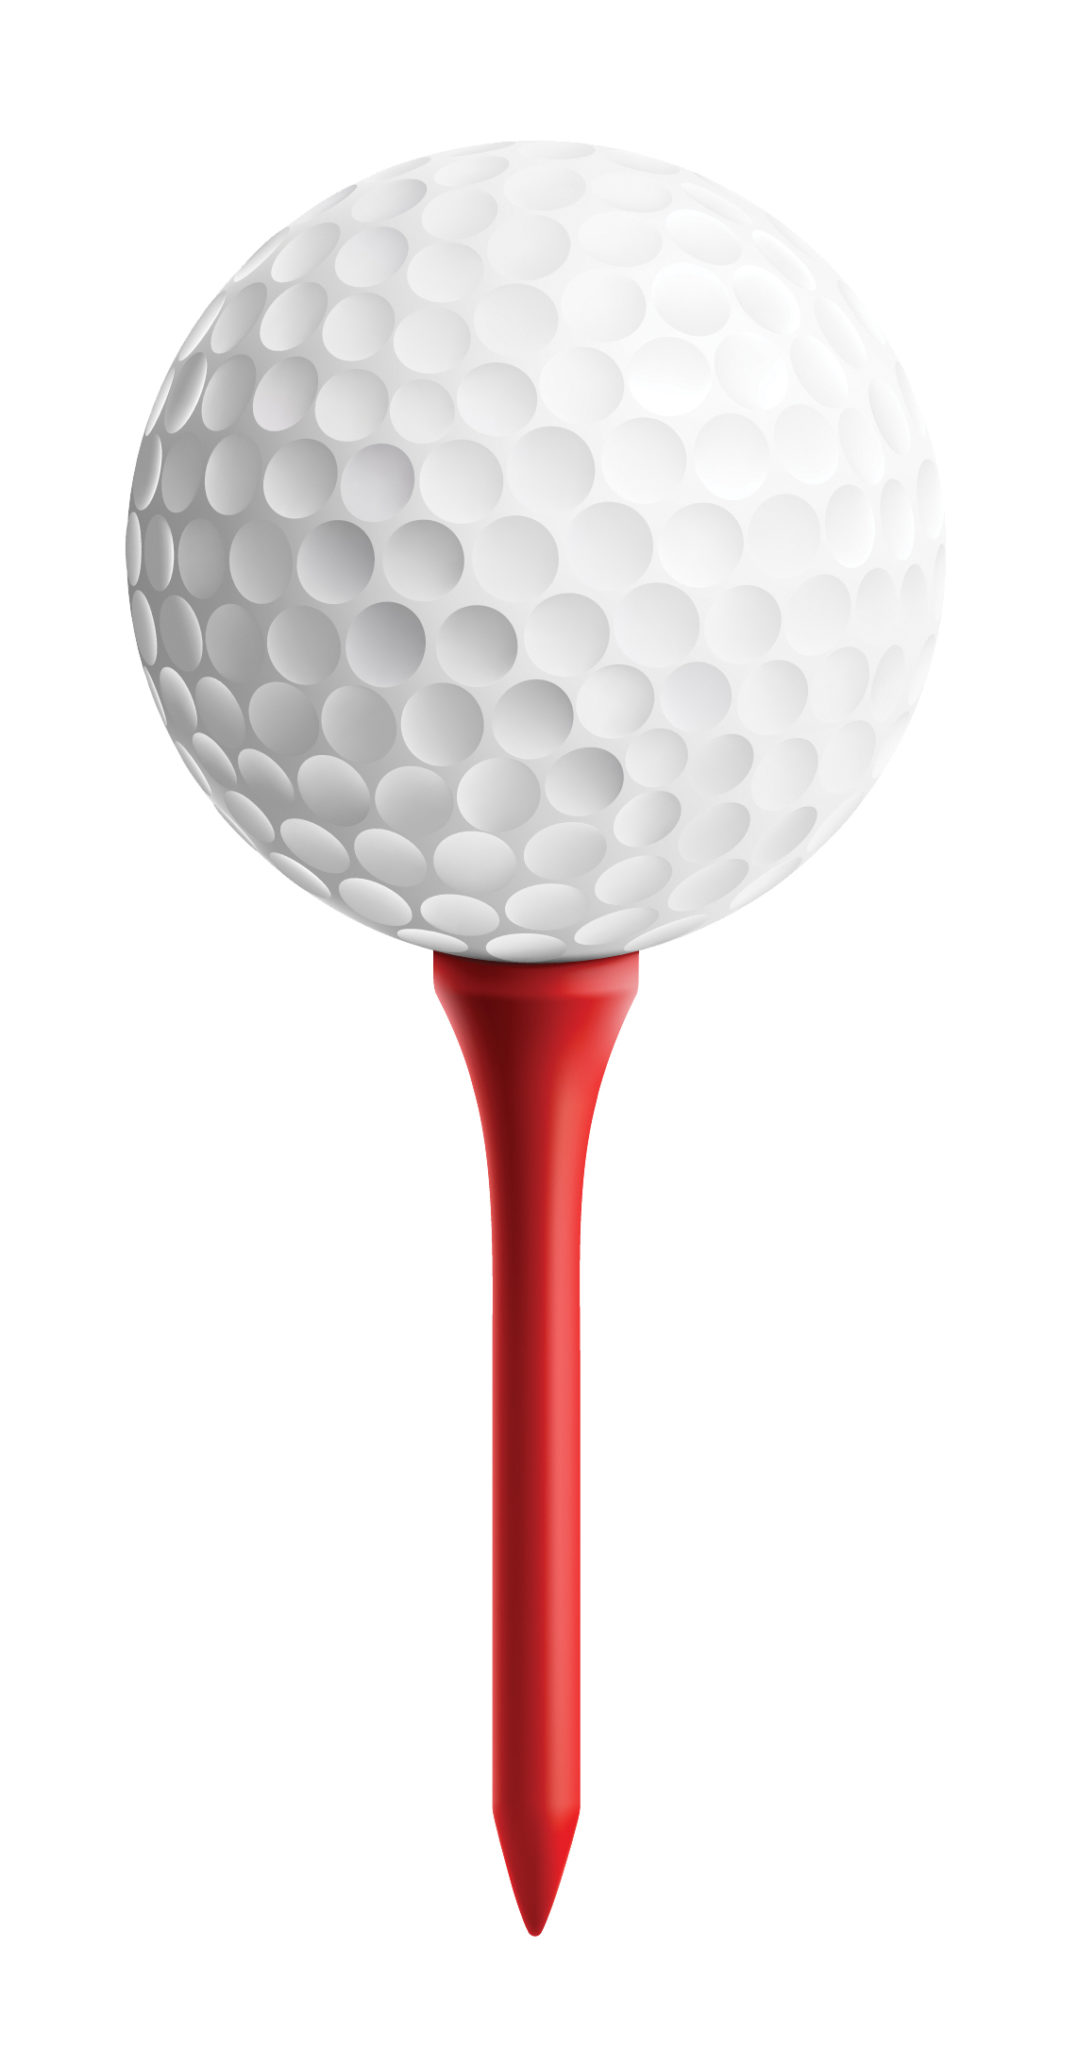 Golf Ball On Tee Png Free Golf Ball On Tee Png Transparent Images 47891 Pngio